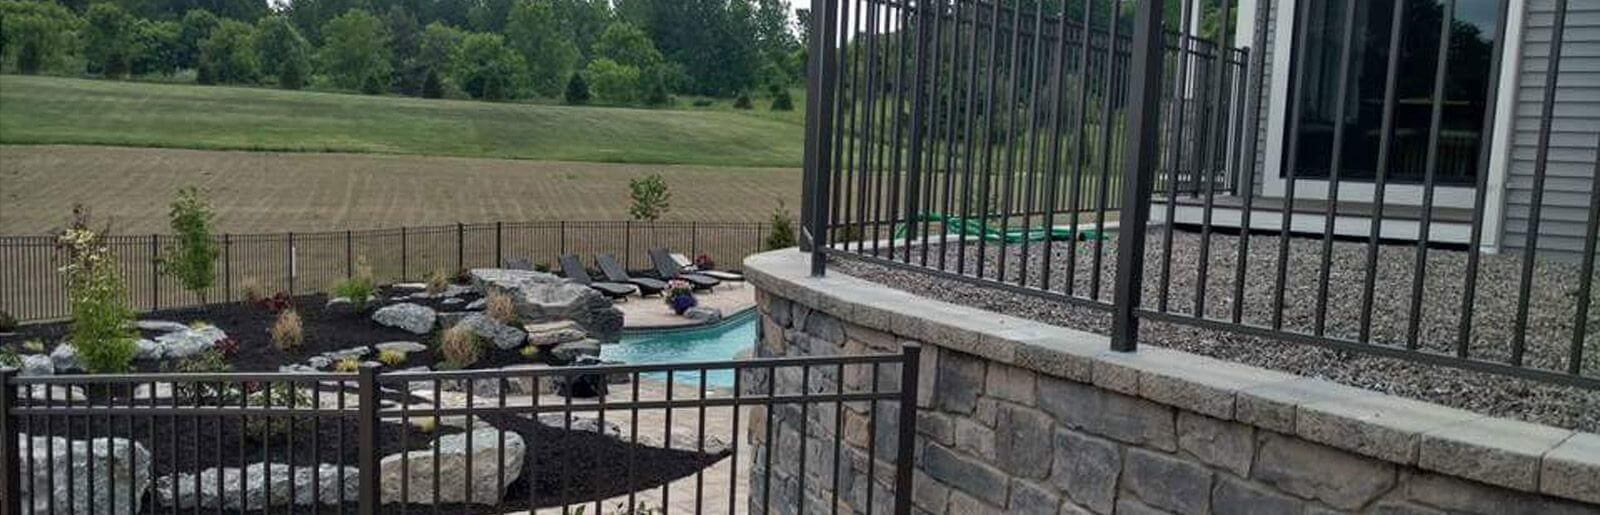 Acia Construction Llc Can Help Installing A New Fence Or